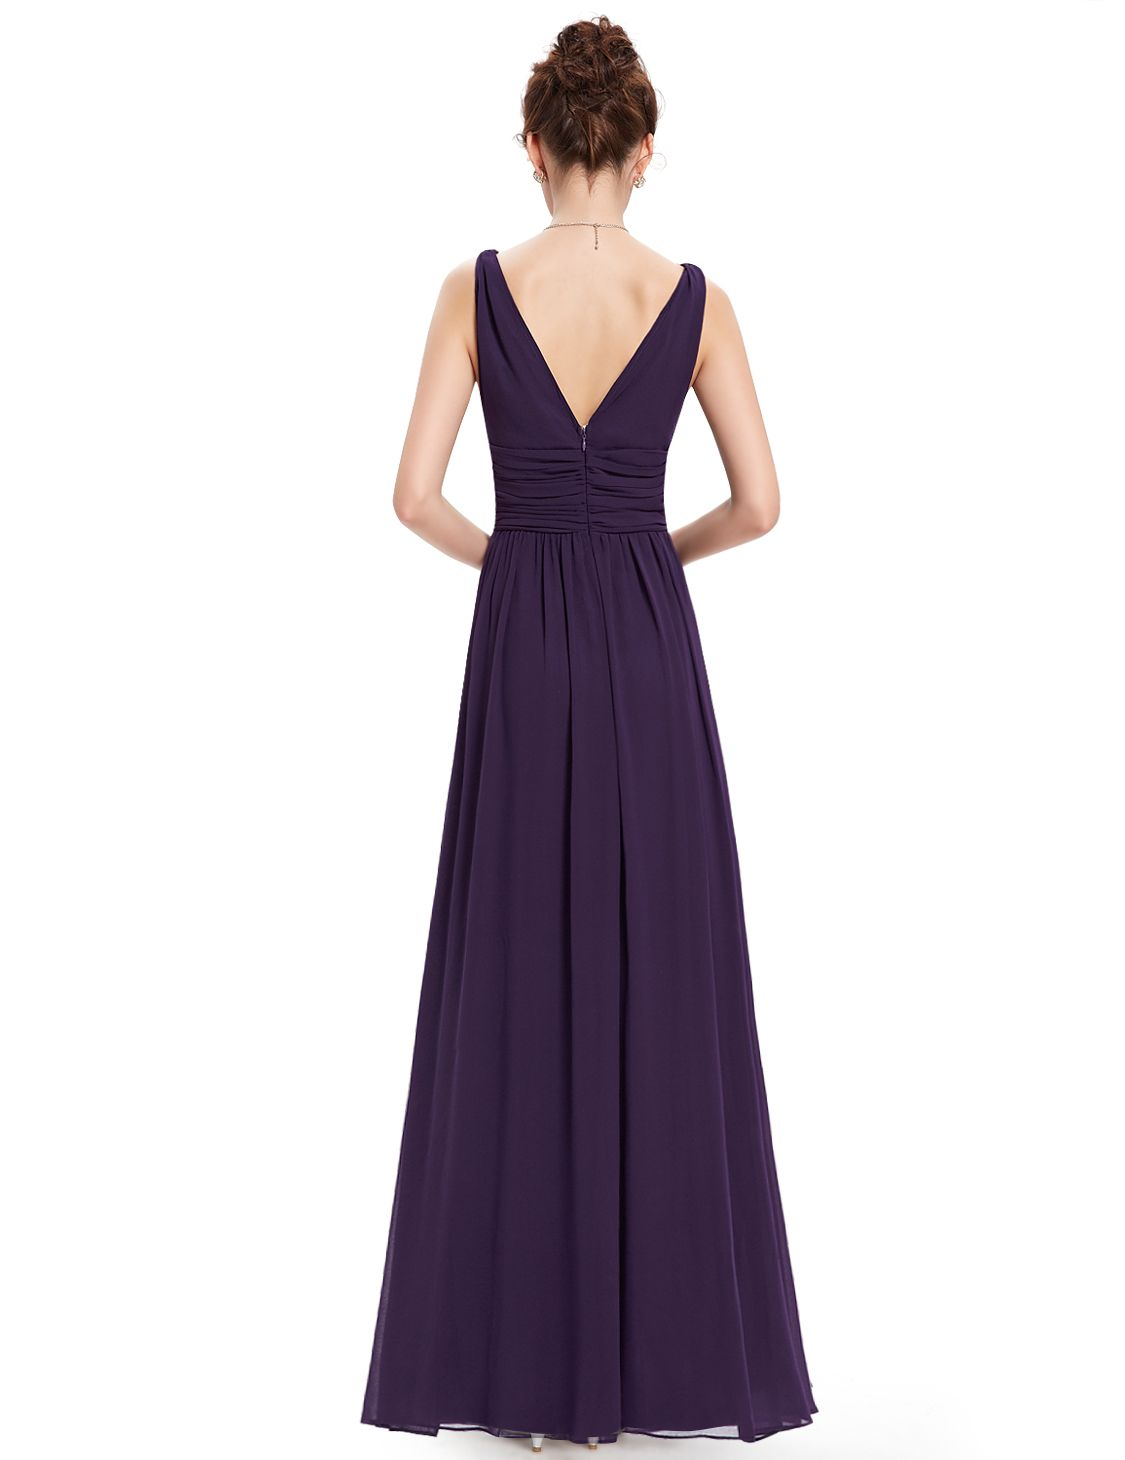 bae2fca87dc Ever-Pretty Women s Sexy Long Sleeveless Bridal Party Dresses for Women  09016 (Purple 16 US) Long